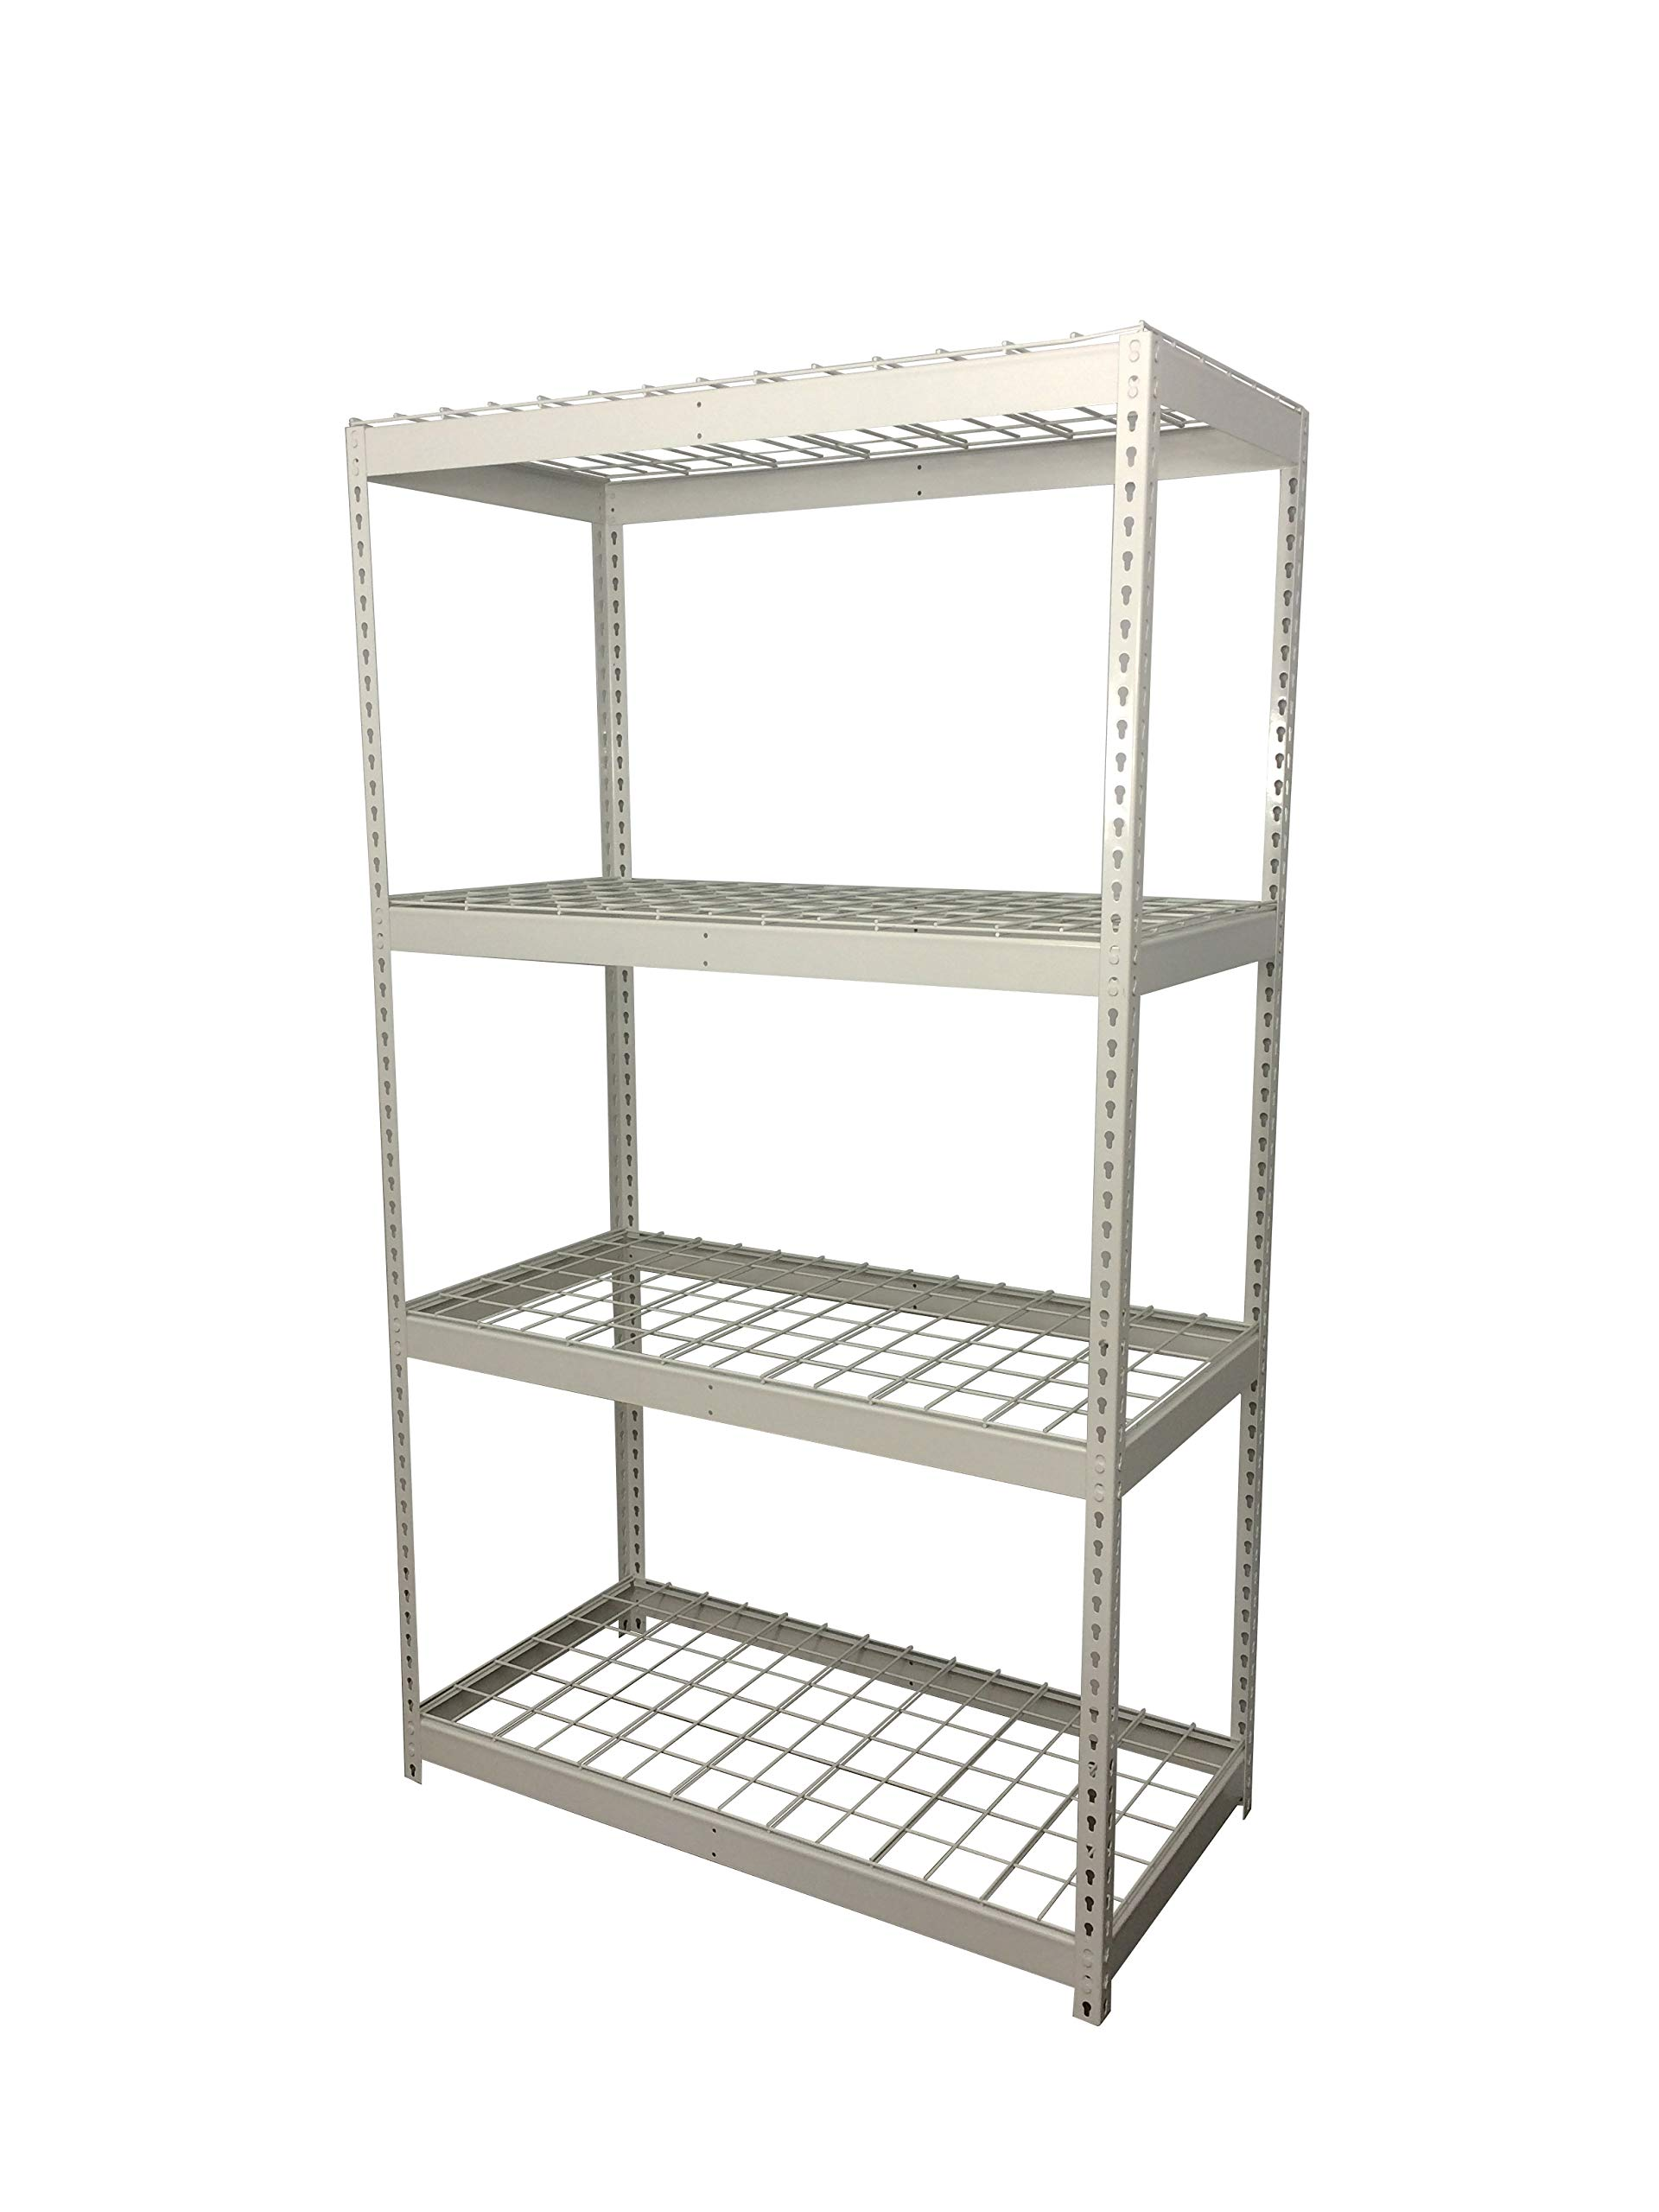 SafeRacks Garage Storage Rack | Steel Shelving Unit | 2'D x 4'W x 7'T by SafeRacks